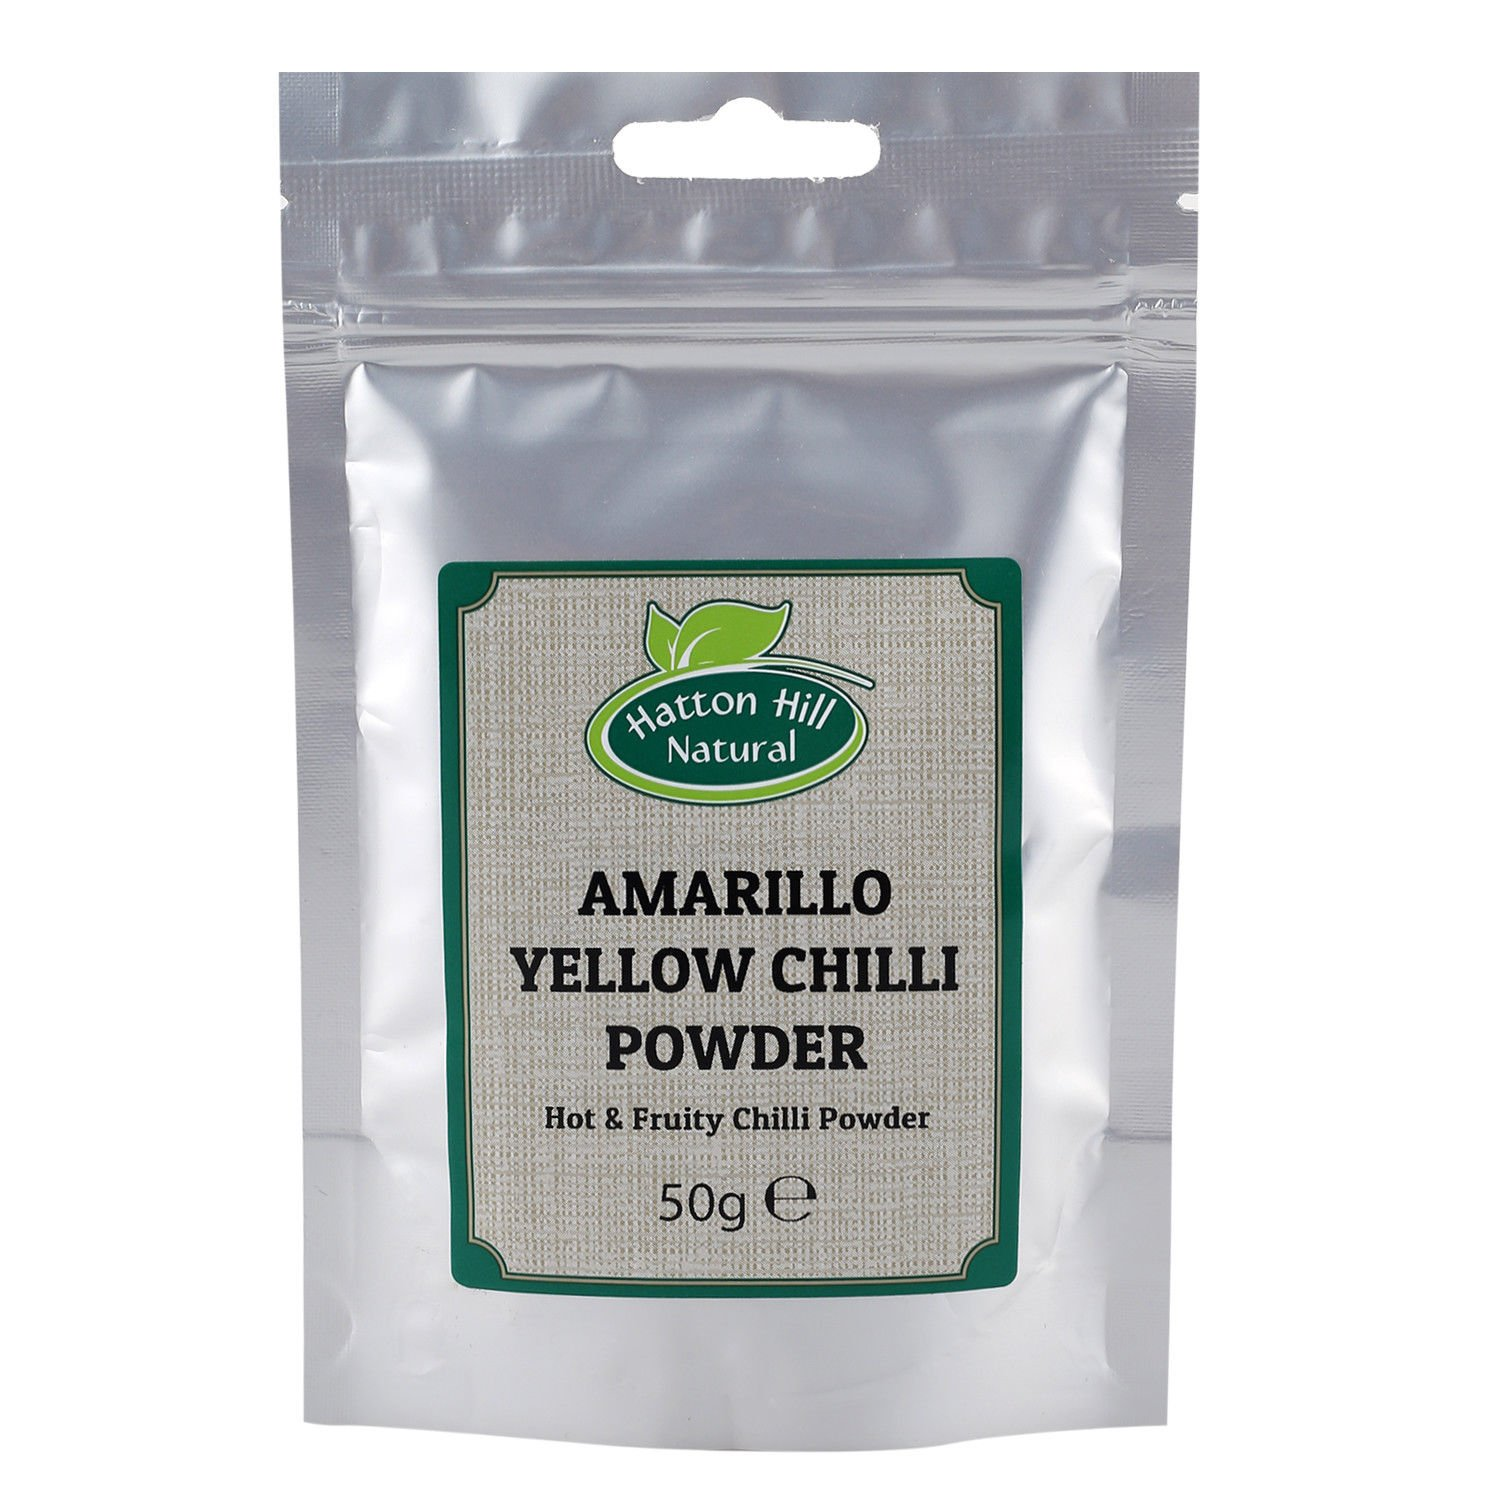 Amarillo Yellow Chilli Powder 50g by Hatton Hill - Free UK Delivery